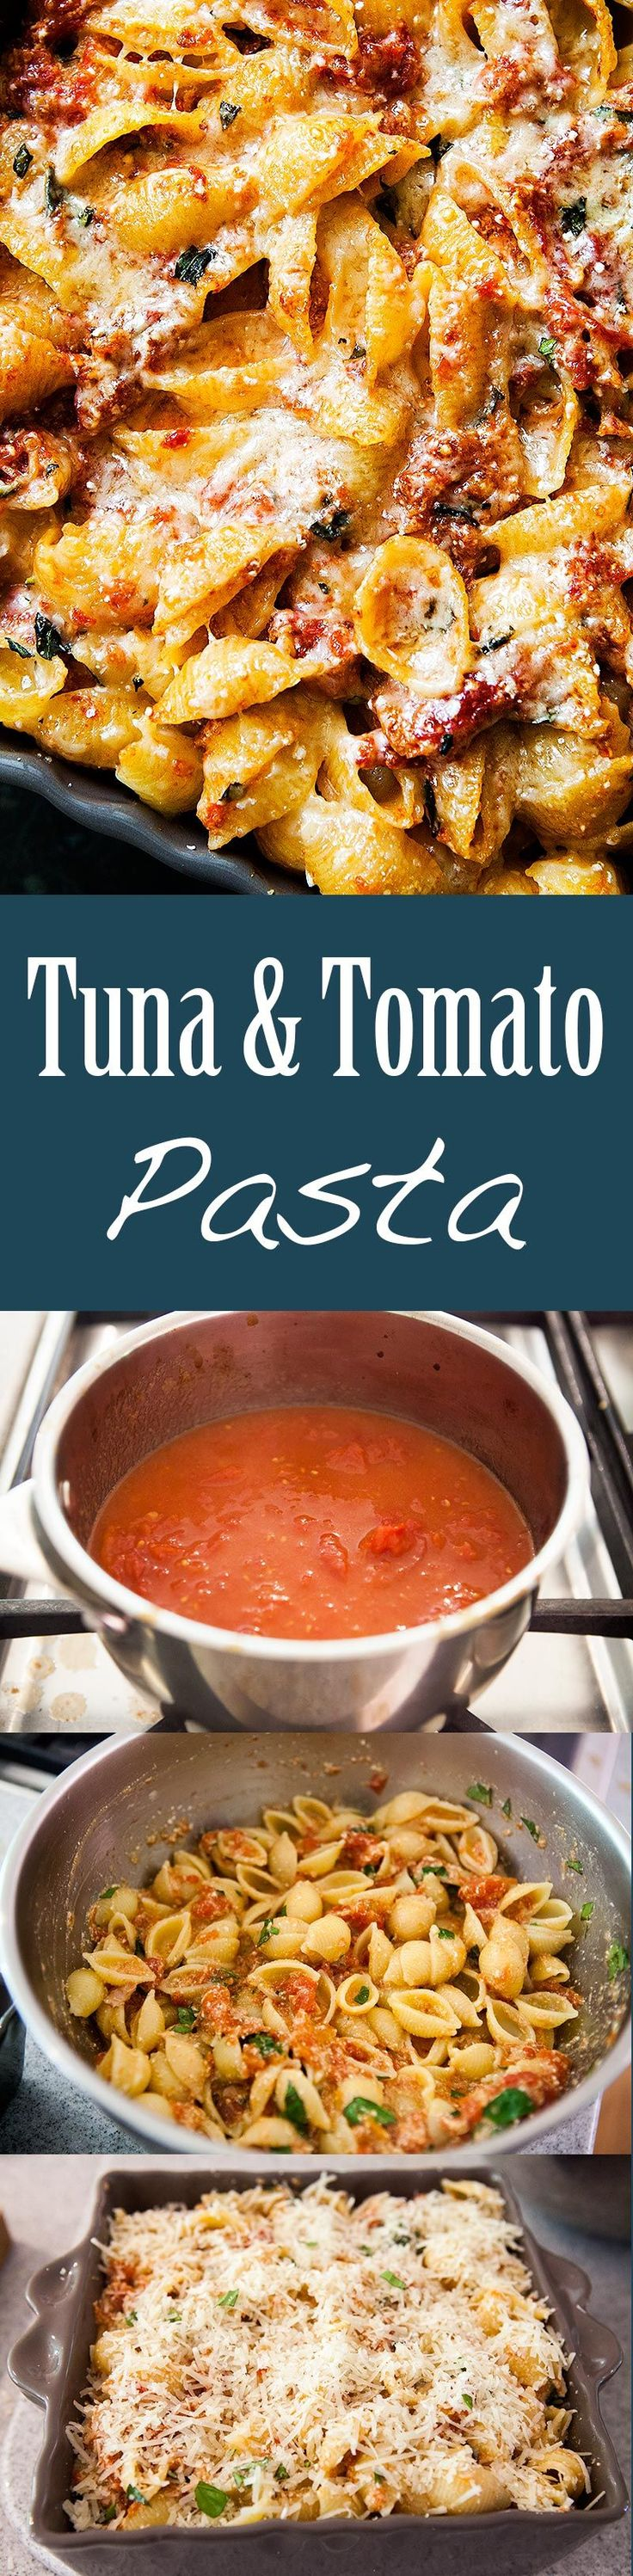 Tuna and Tomato Pasta ~ A simple dish of pasta shells with a buttery tomato sauce, tuna and ricotta, all baked with a cheesy parmesan crust. ~ SimplyRecipes.com